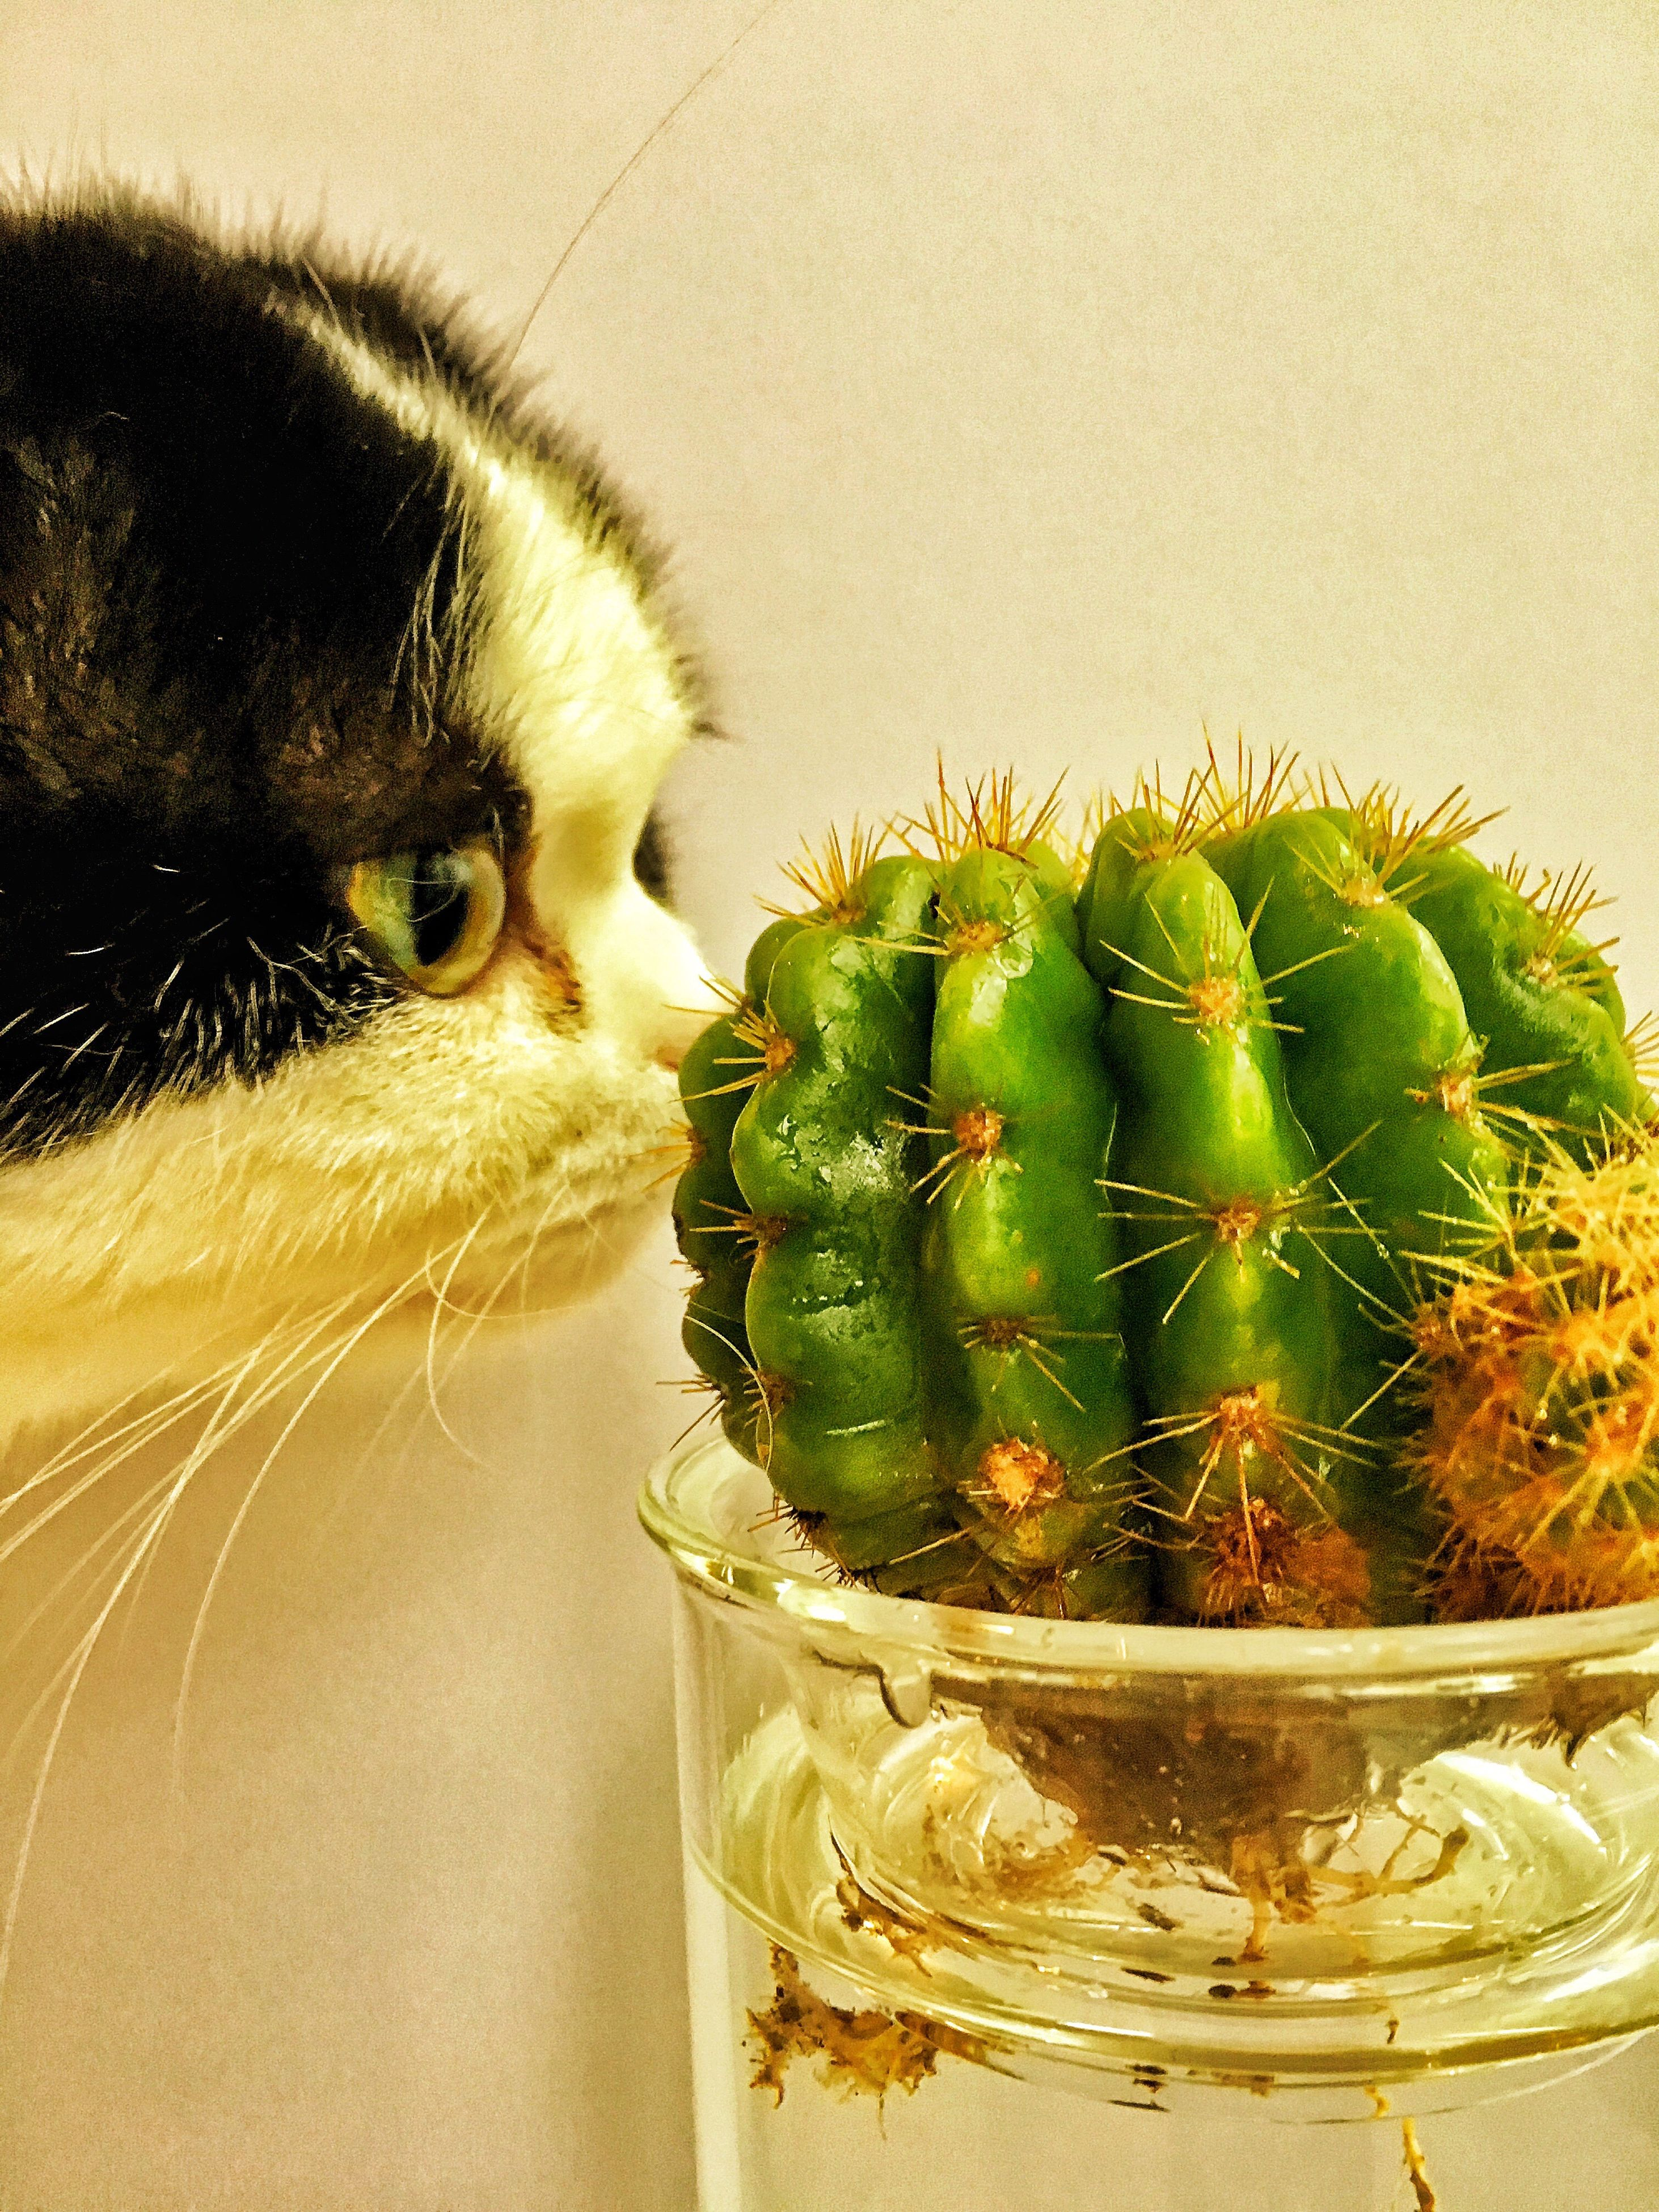 indoors, potted plant, sharp, close-up, spiked, cactus, domestic cat, animal themes, pets, plant, thorn, one animal, animal head, green color, domestic animals, cat, feline, whisker, mammal, selective focus, houseplant, no people